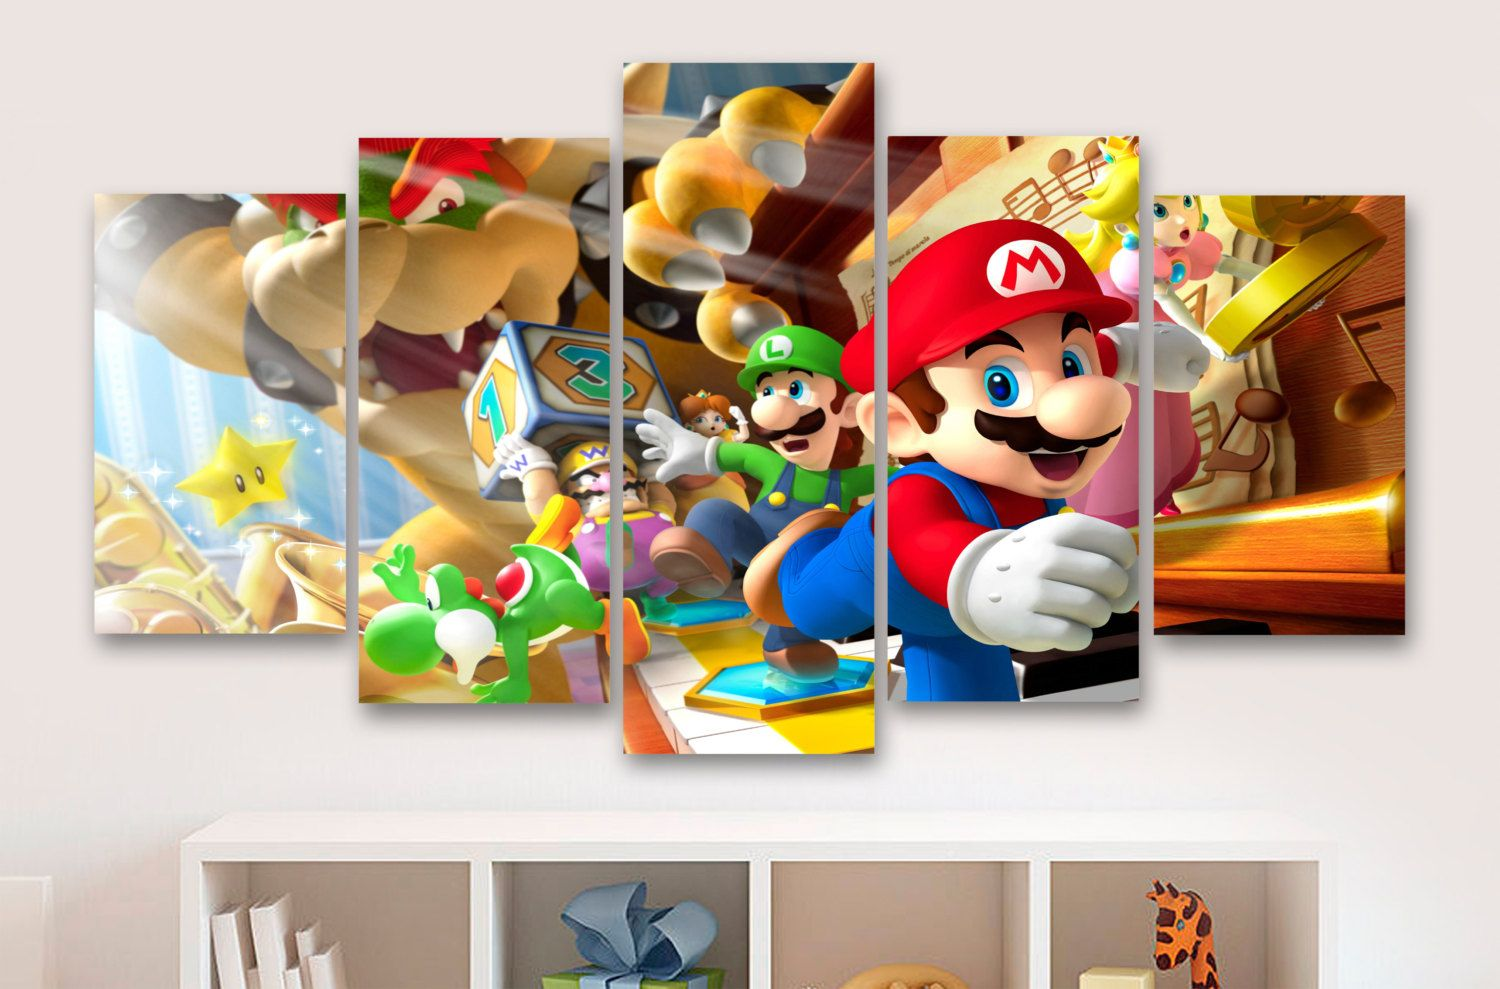 Super mario and friends childrens gaming 5 piece panel super mario and friends childrens gaming 5 piece panel canvas wall art amipublicfo Image collections